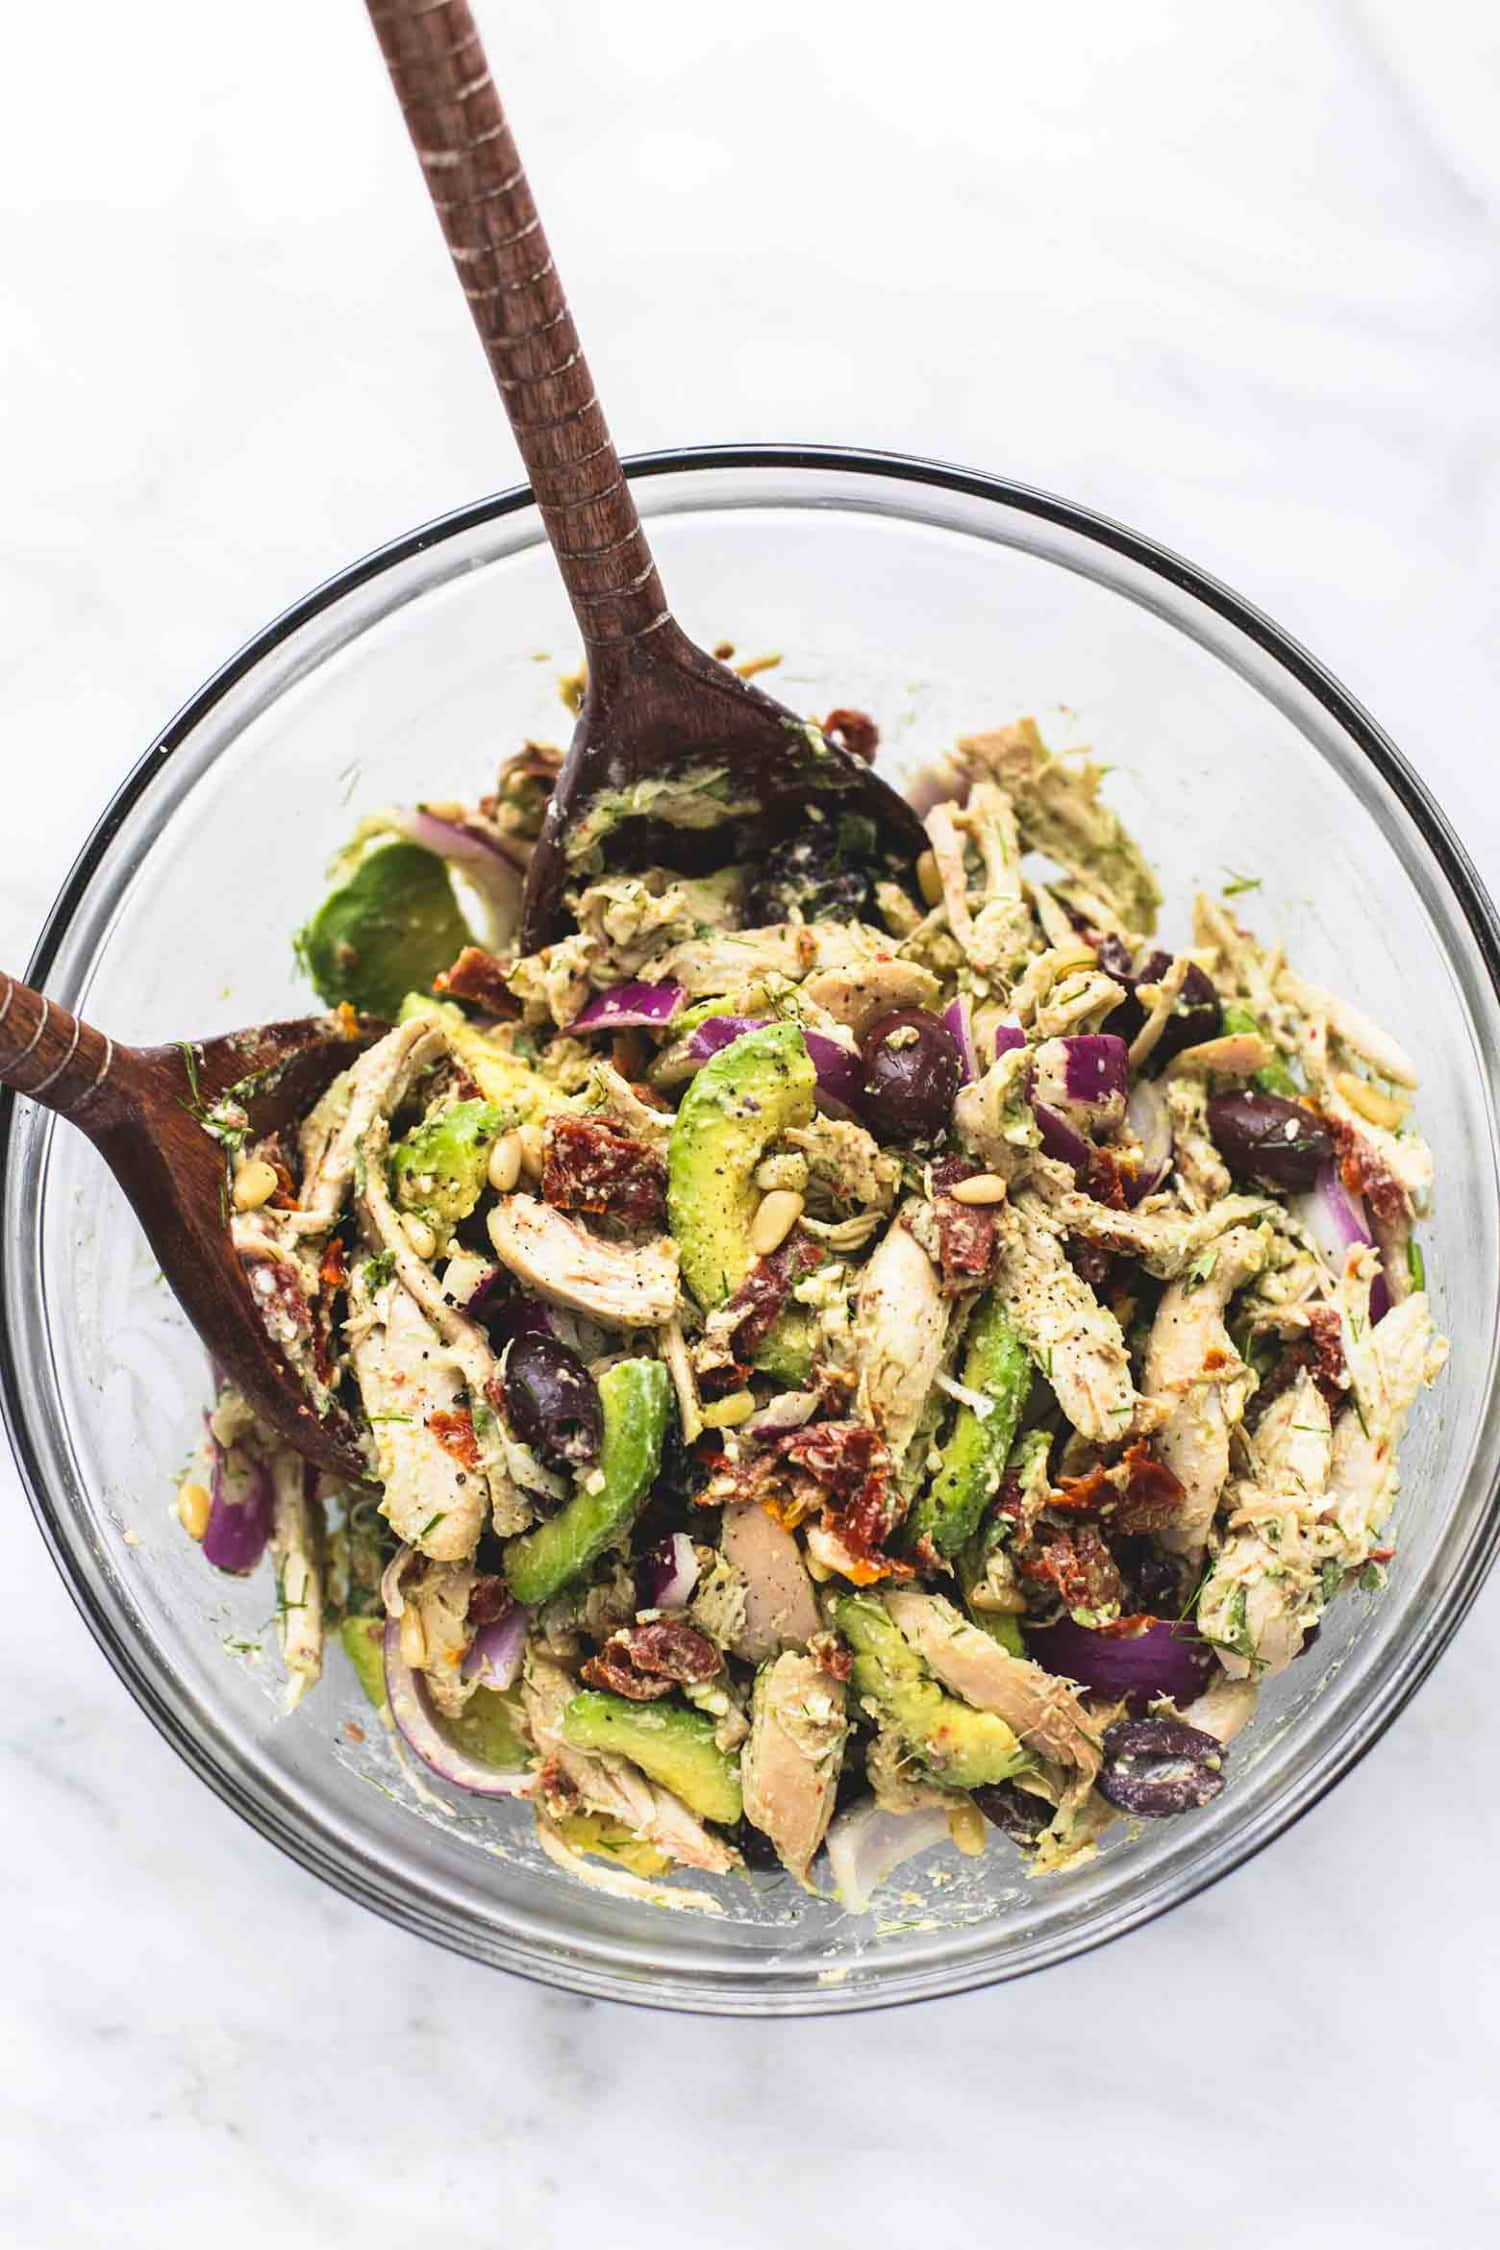 Make This Greek Avocado Chicken Salad and Eat It All Week